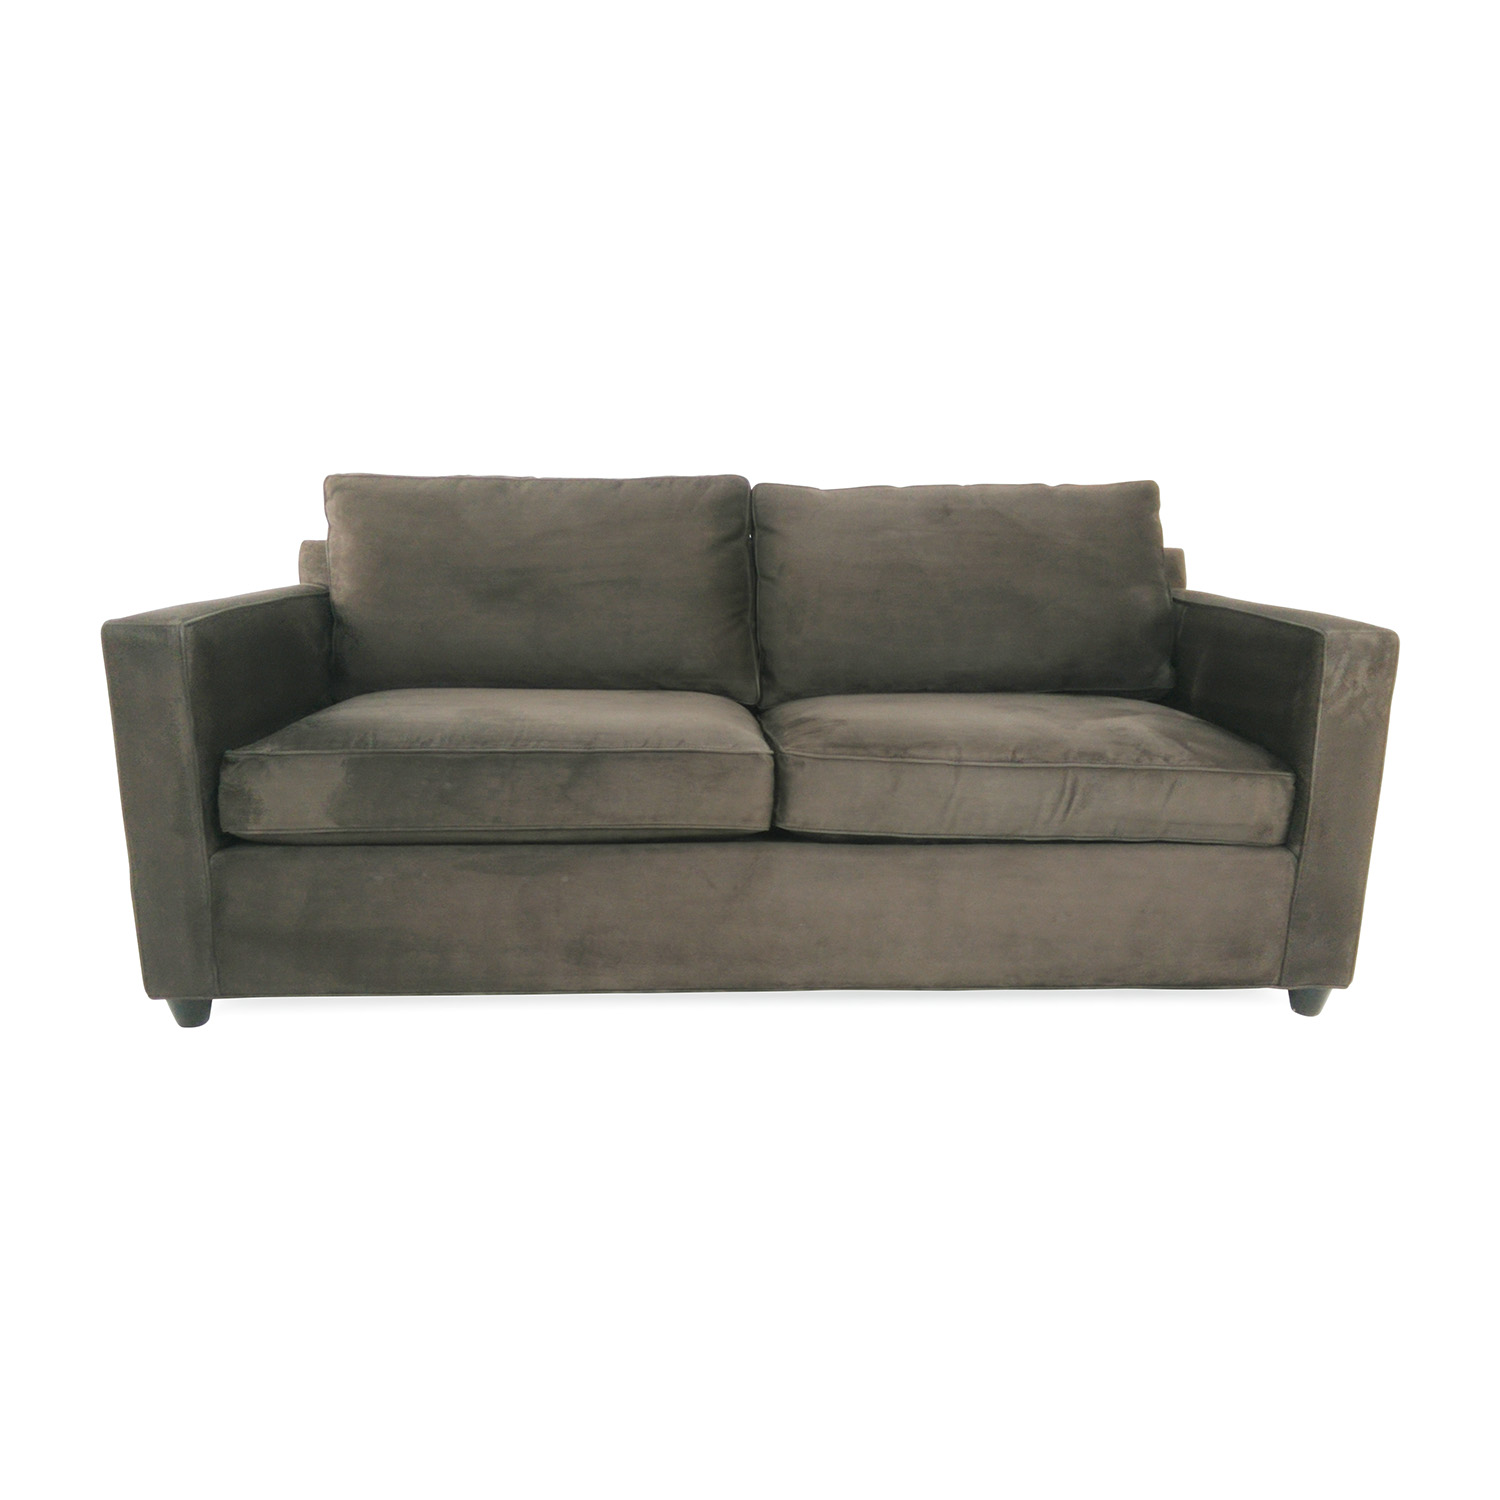 buy Crate & Barrel Davis Sofa Crate and Barrel Sofas